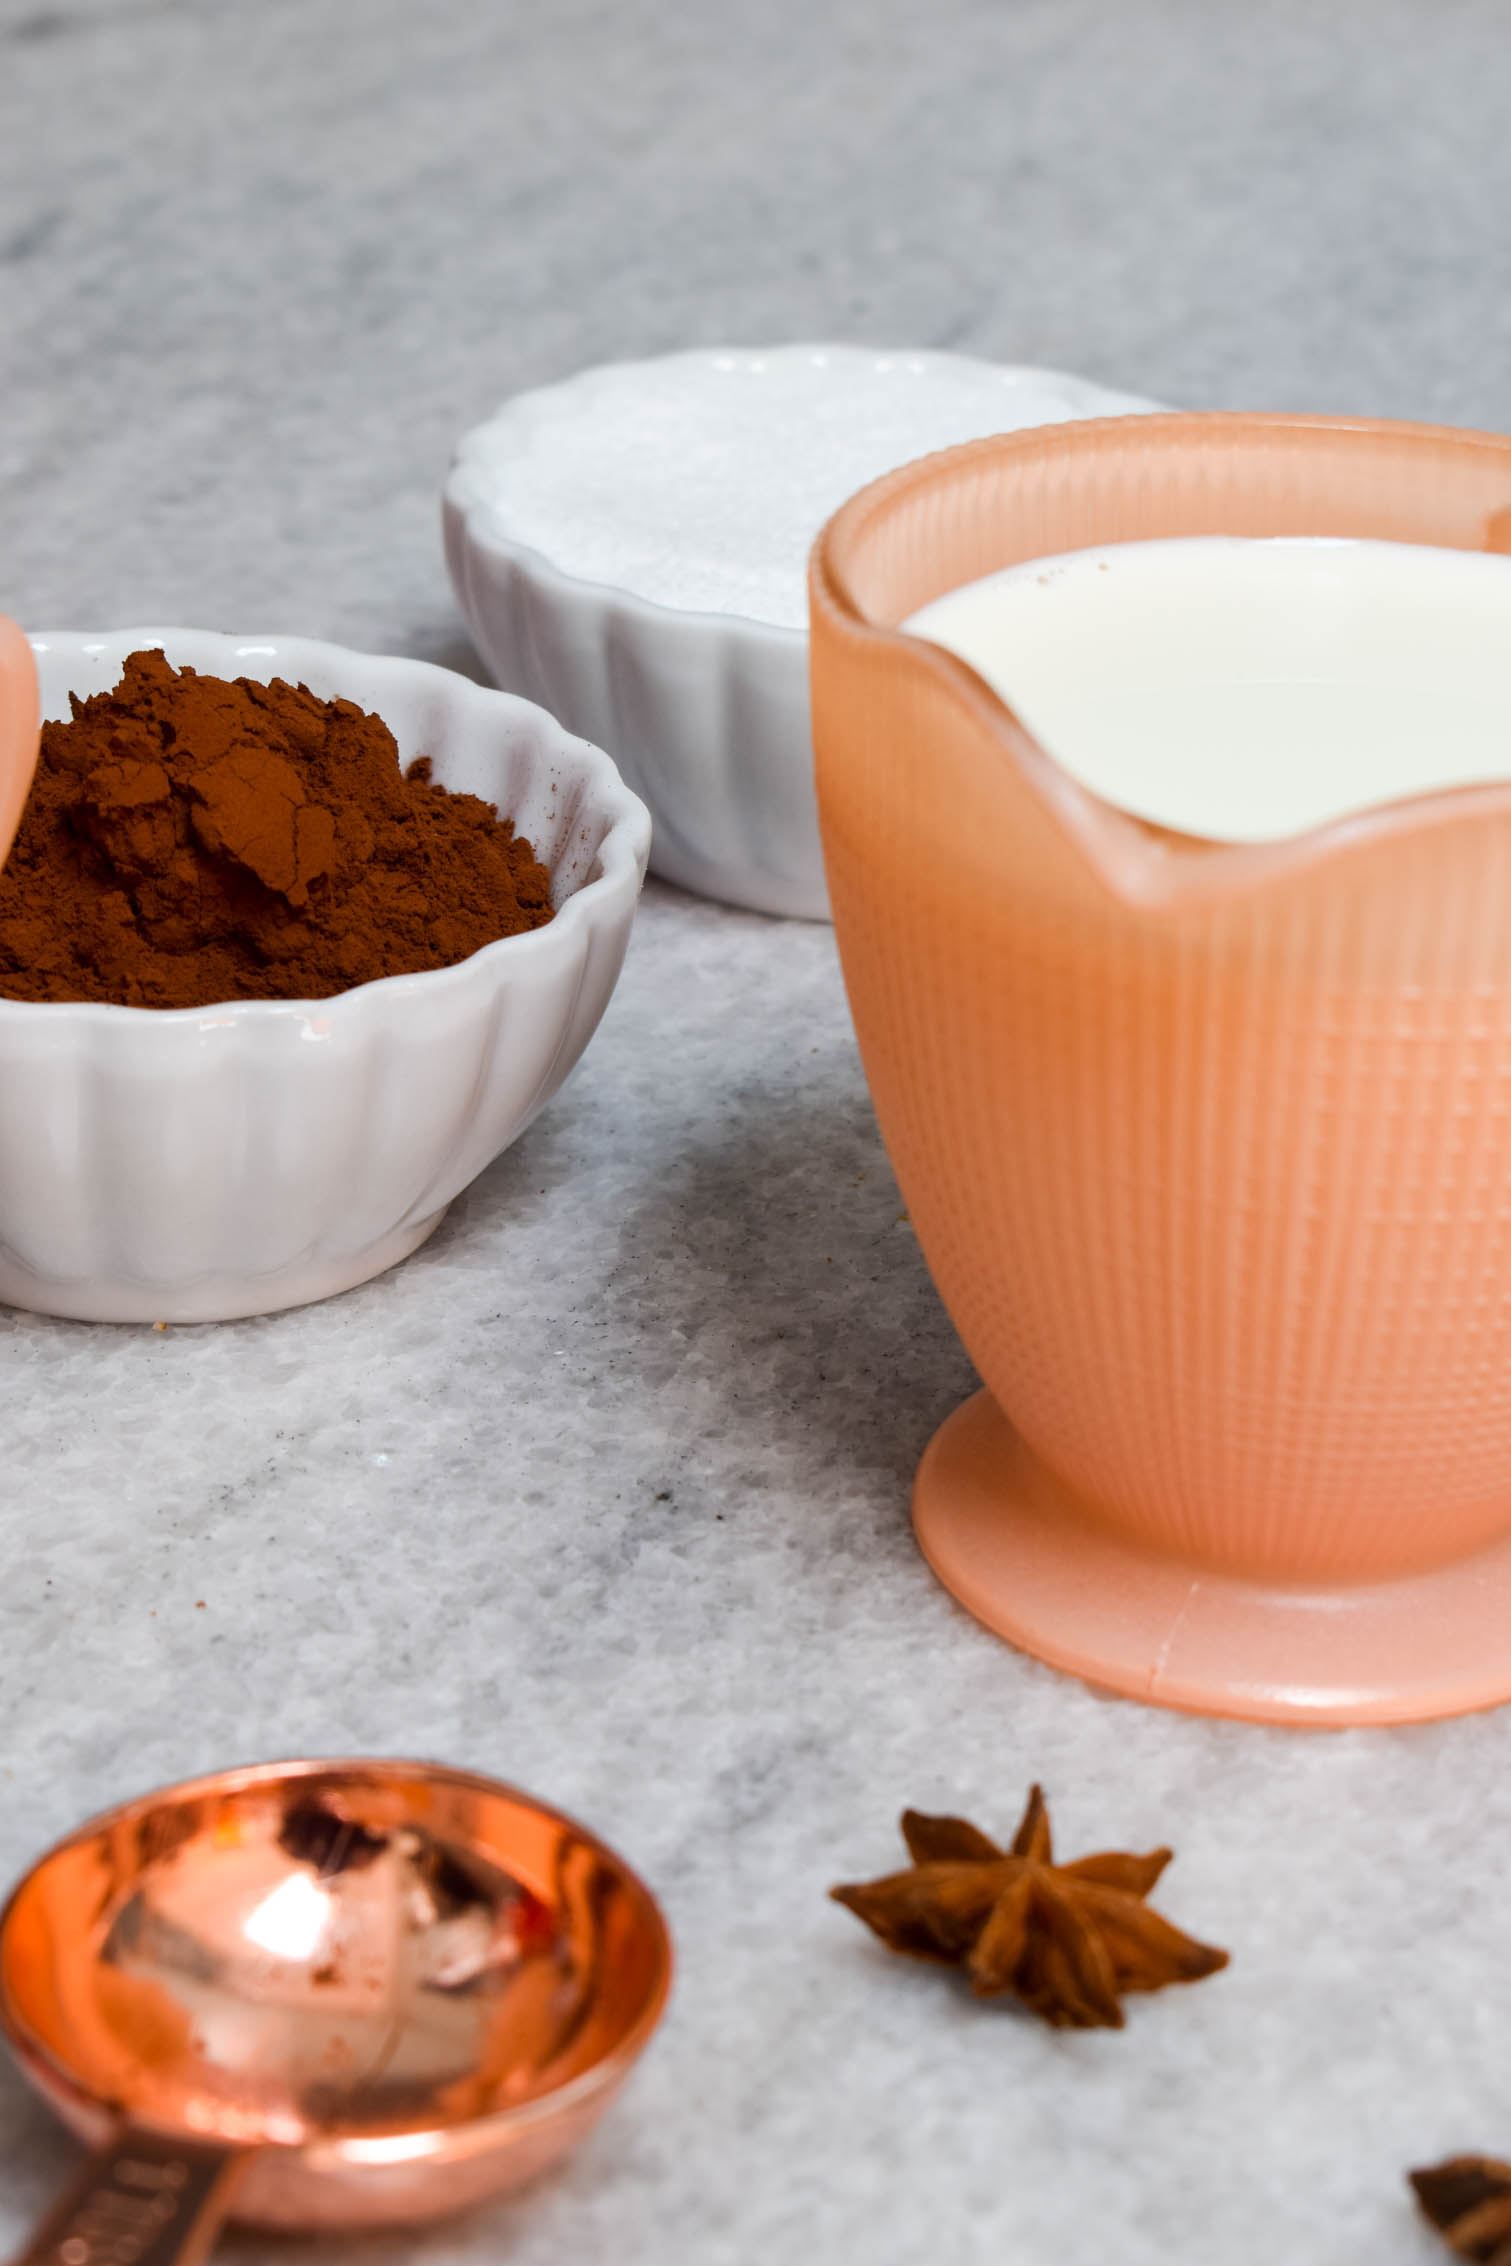 Low carb hot chocolate is full of tasty, fatty goodness! This recipe tastes even better than regular hot chocolate, and easy to see why. Make your own using your Kitchen Aid k400 Blender (it chopped up the dark chocolate so easily!), and enjoy a cup of the good stuff.